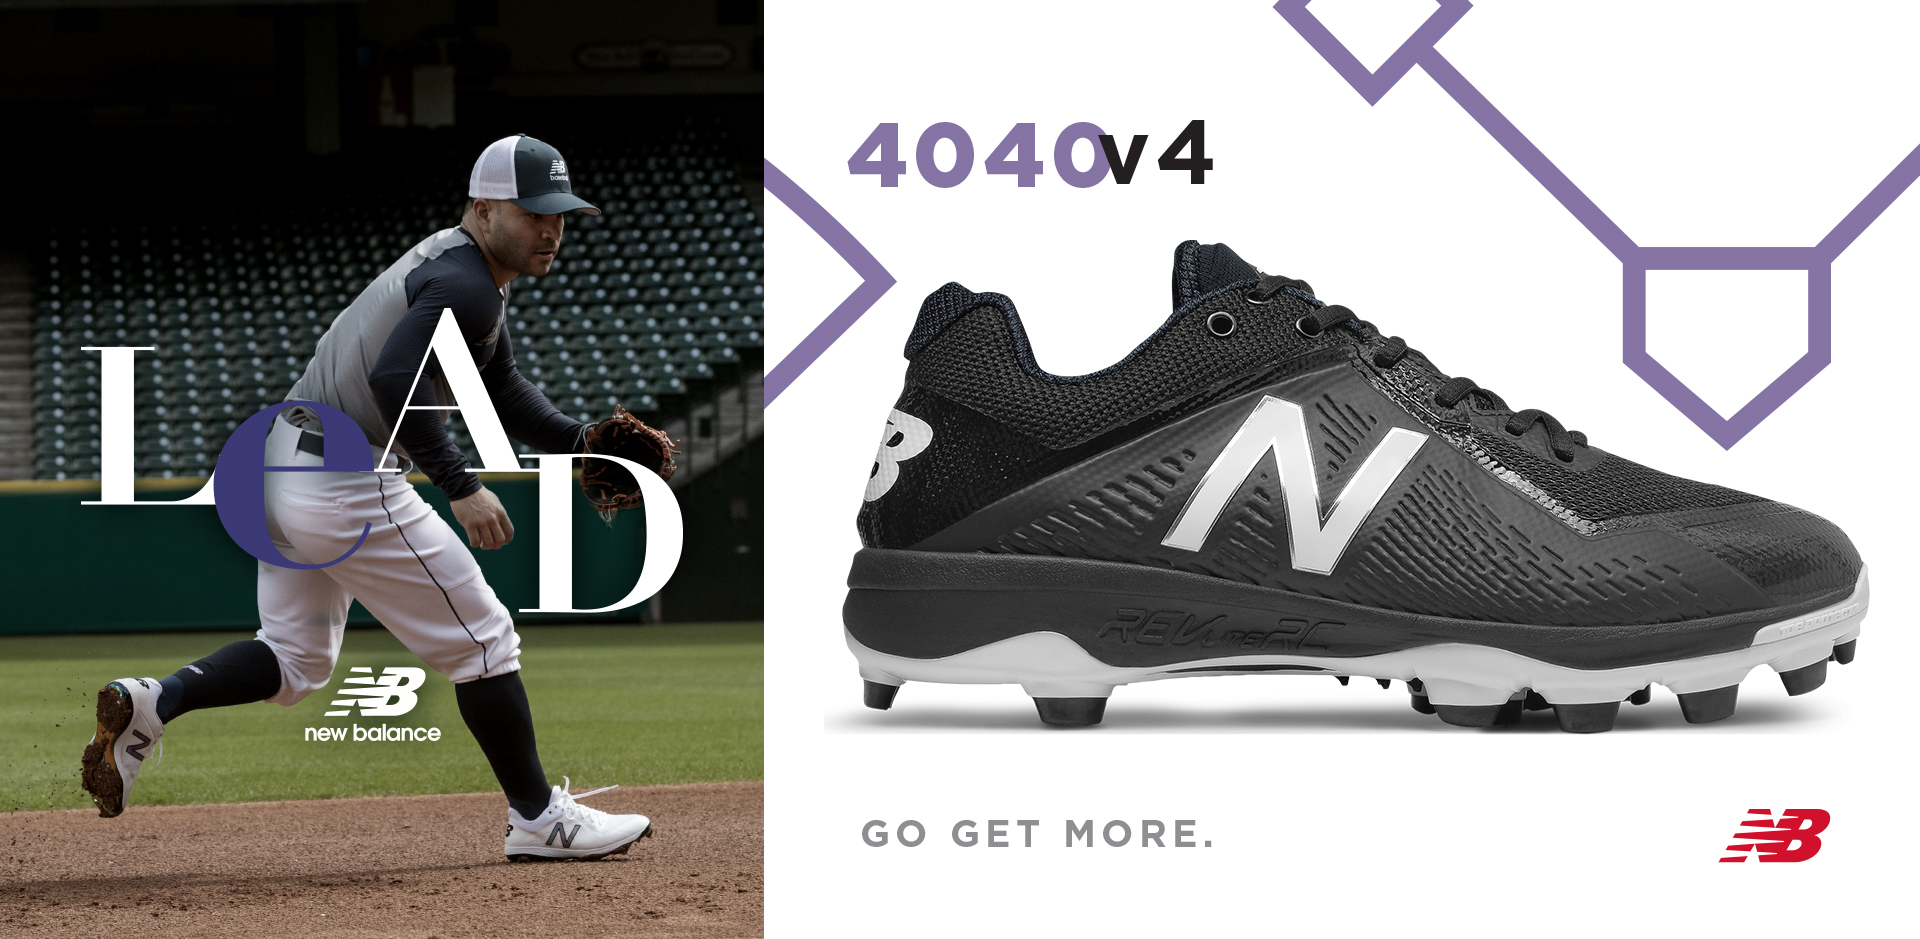 Shop Our Wide Selection of the New Balance 4040v4 Baseball Cleats Available For Sale at your local Source For Sports Baseball store.